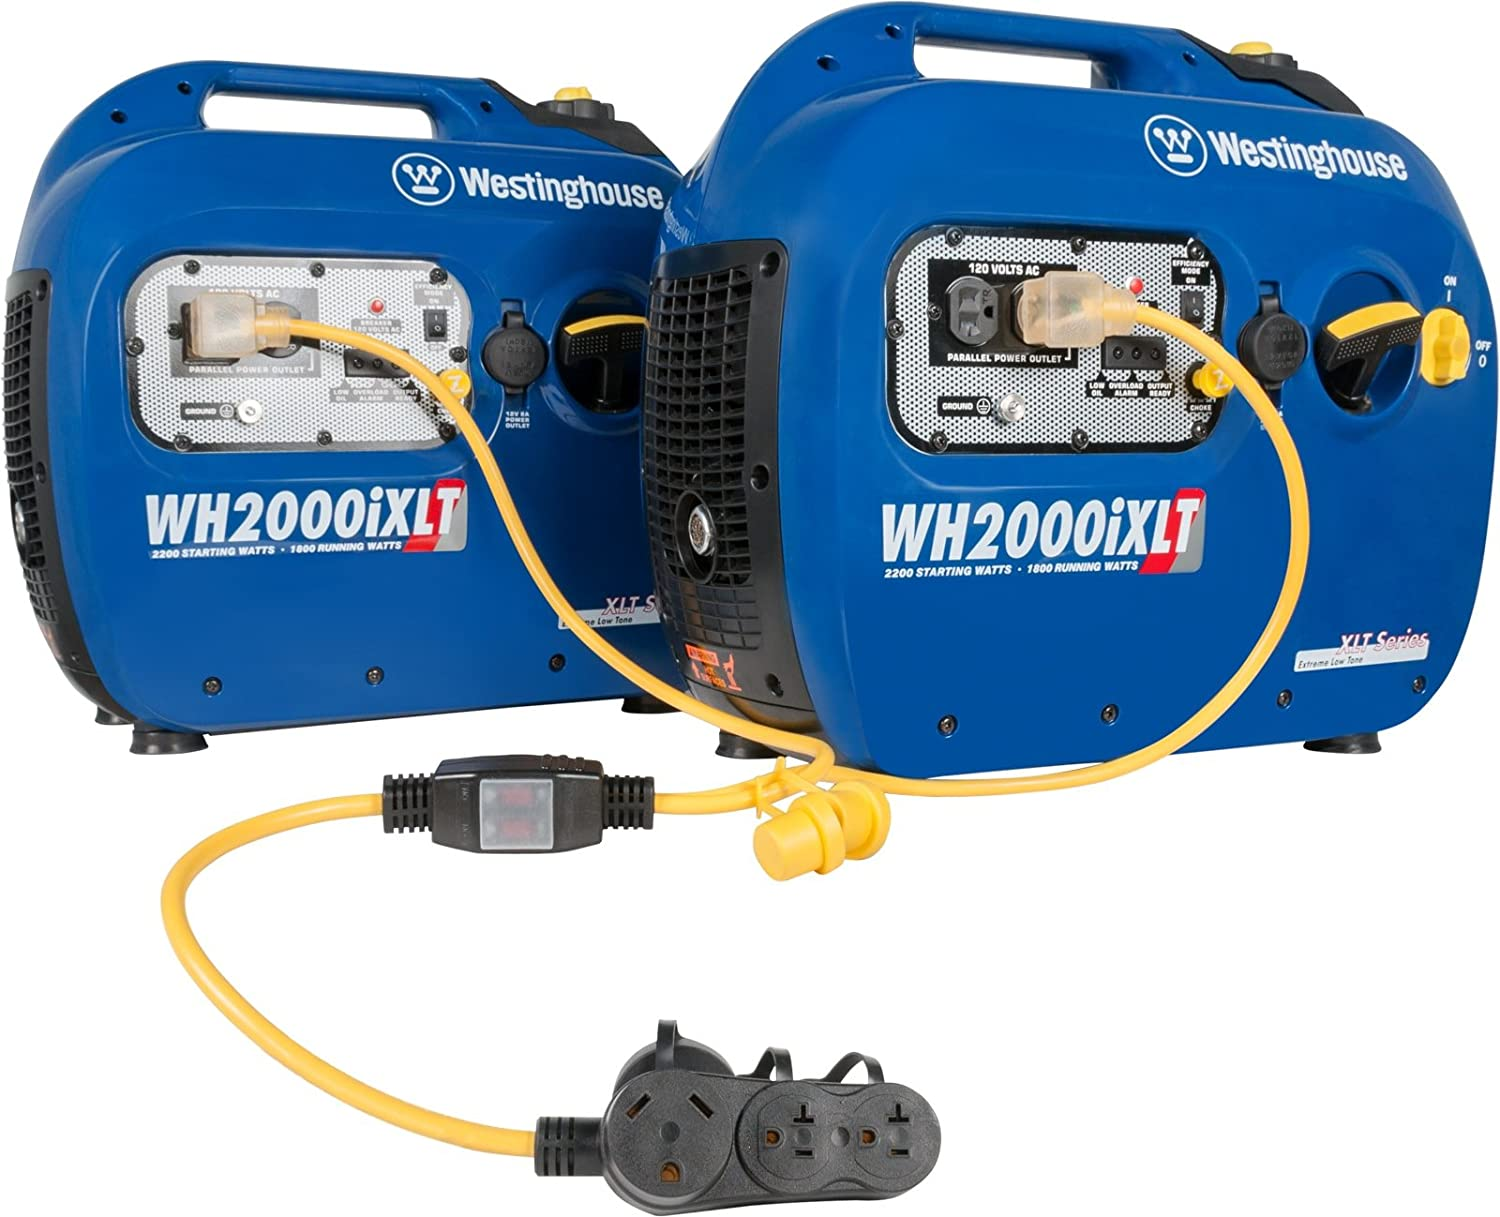 Westinghouse Inverter Generator Parallel Cord Wire Outlets In Series Or Paralleltrailer Light Diagram 7 Pin Compatible With Igen1200 Igen2200 Igen2500 Wh2200ixlt And Wh2400i Generators